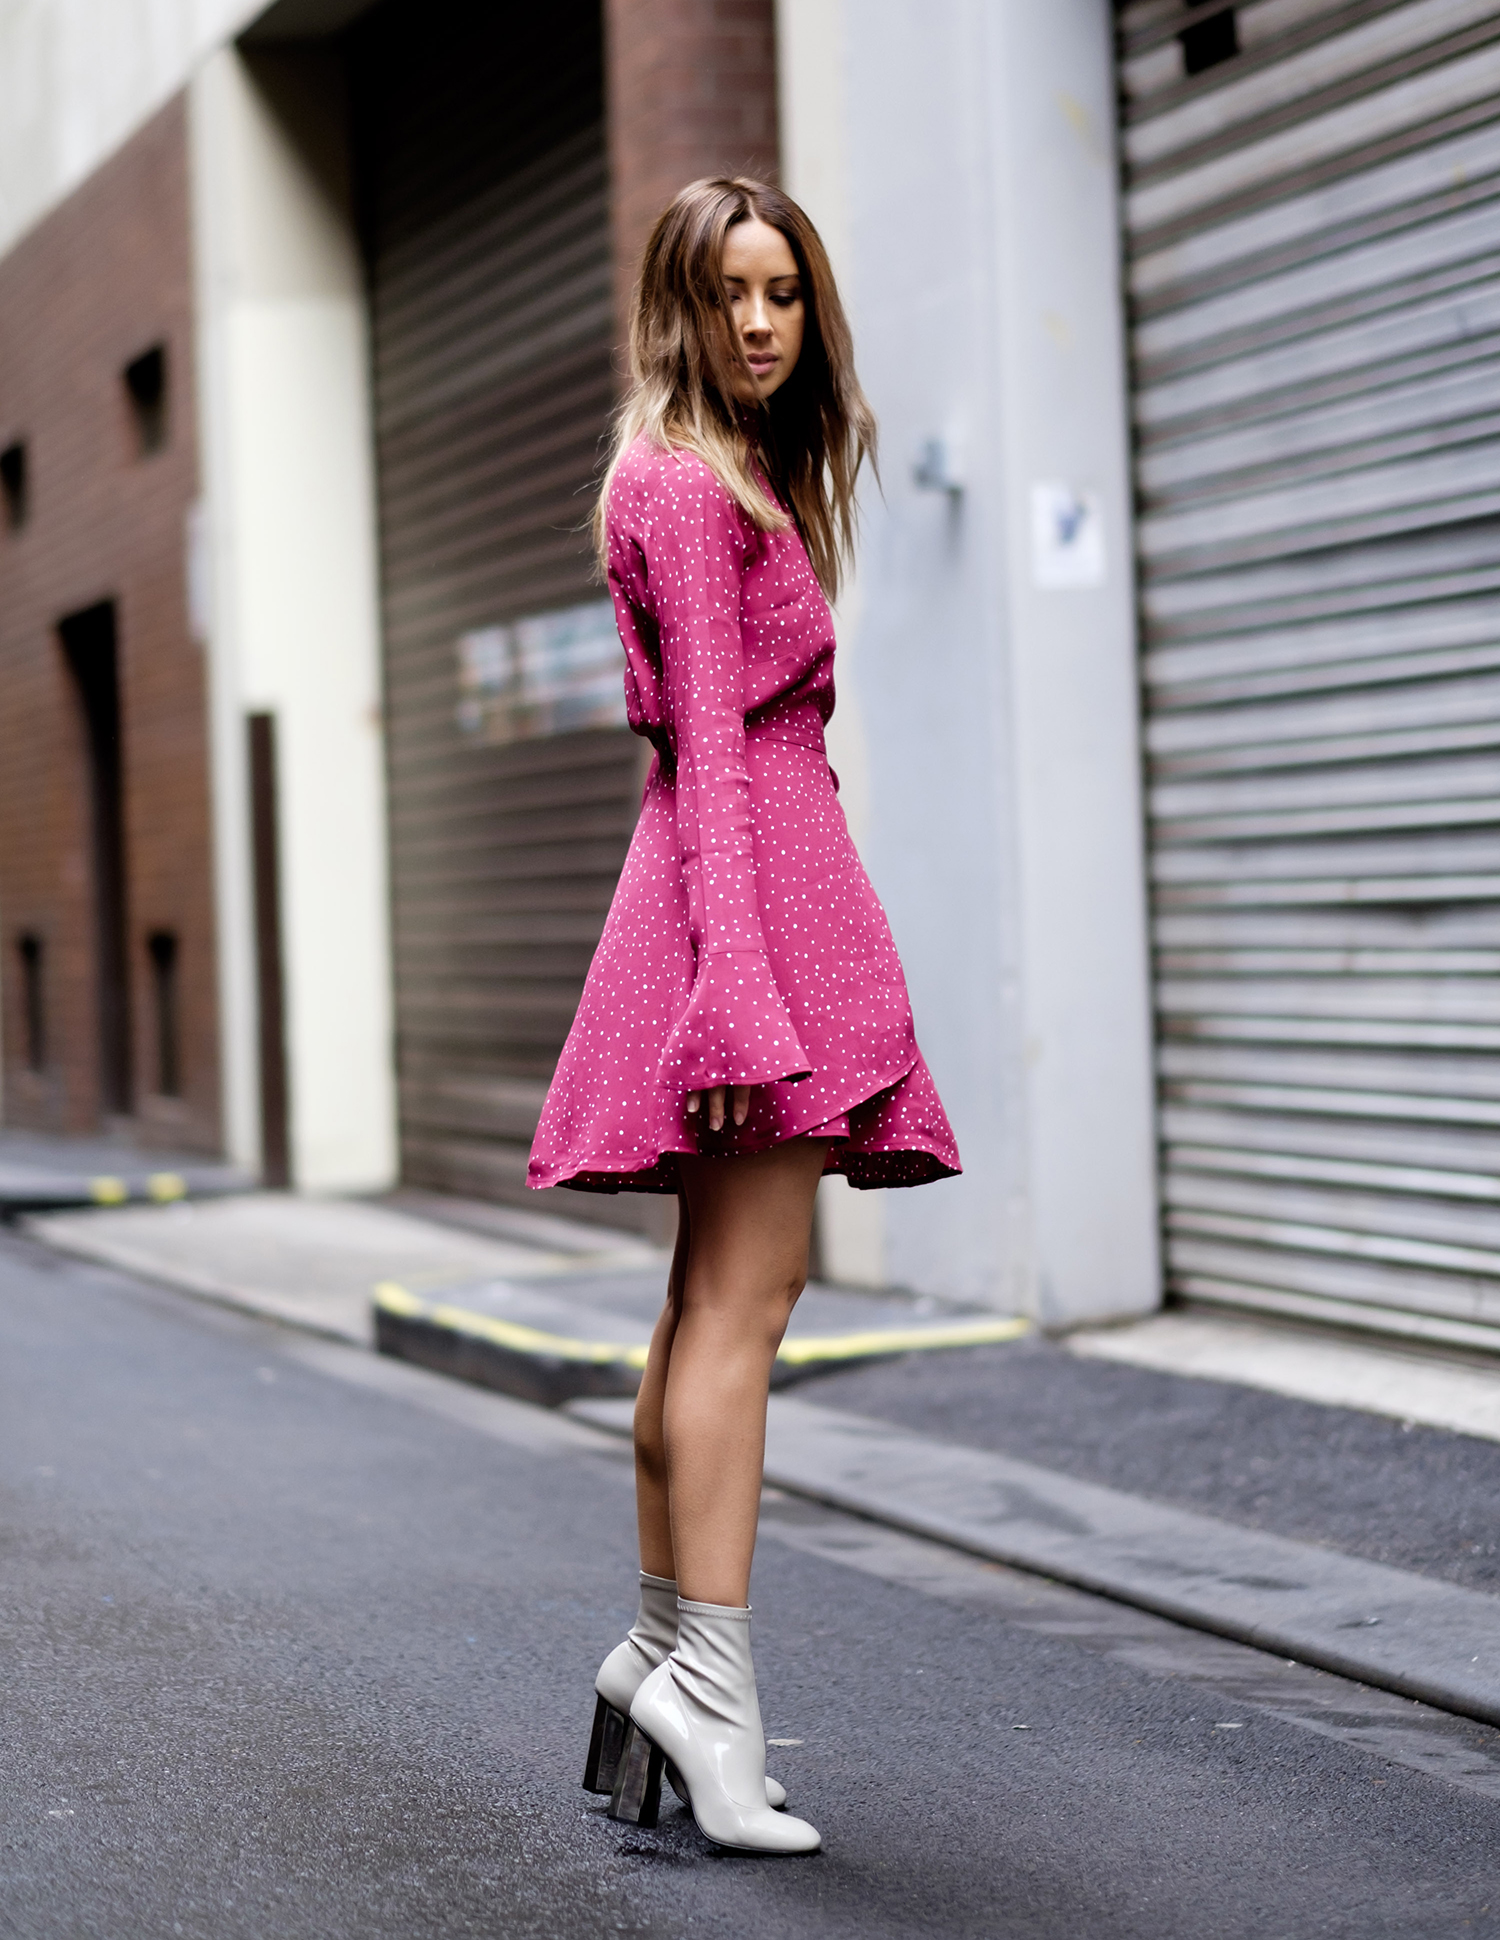 FriendInFashion_StreetStyle_RedDress_1.jpg